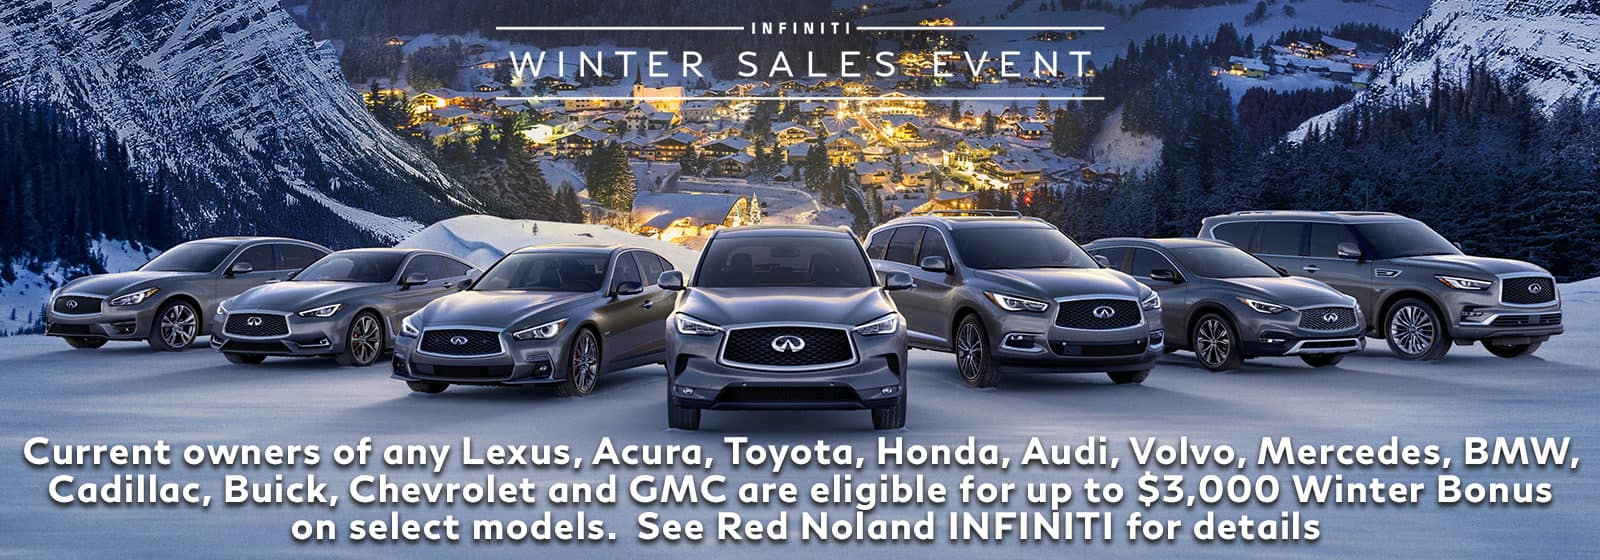 2018 INFINITI Winter Sales Event at Red Noland INFINITI in colorado springs